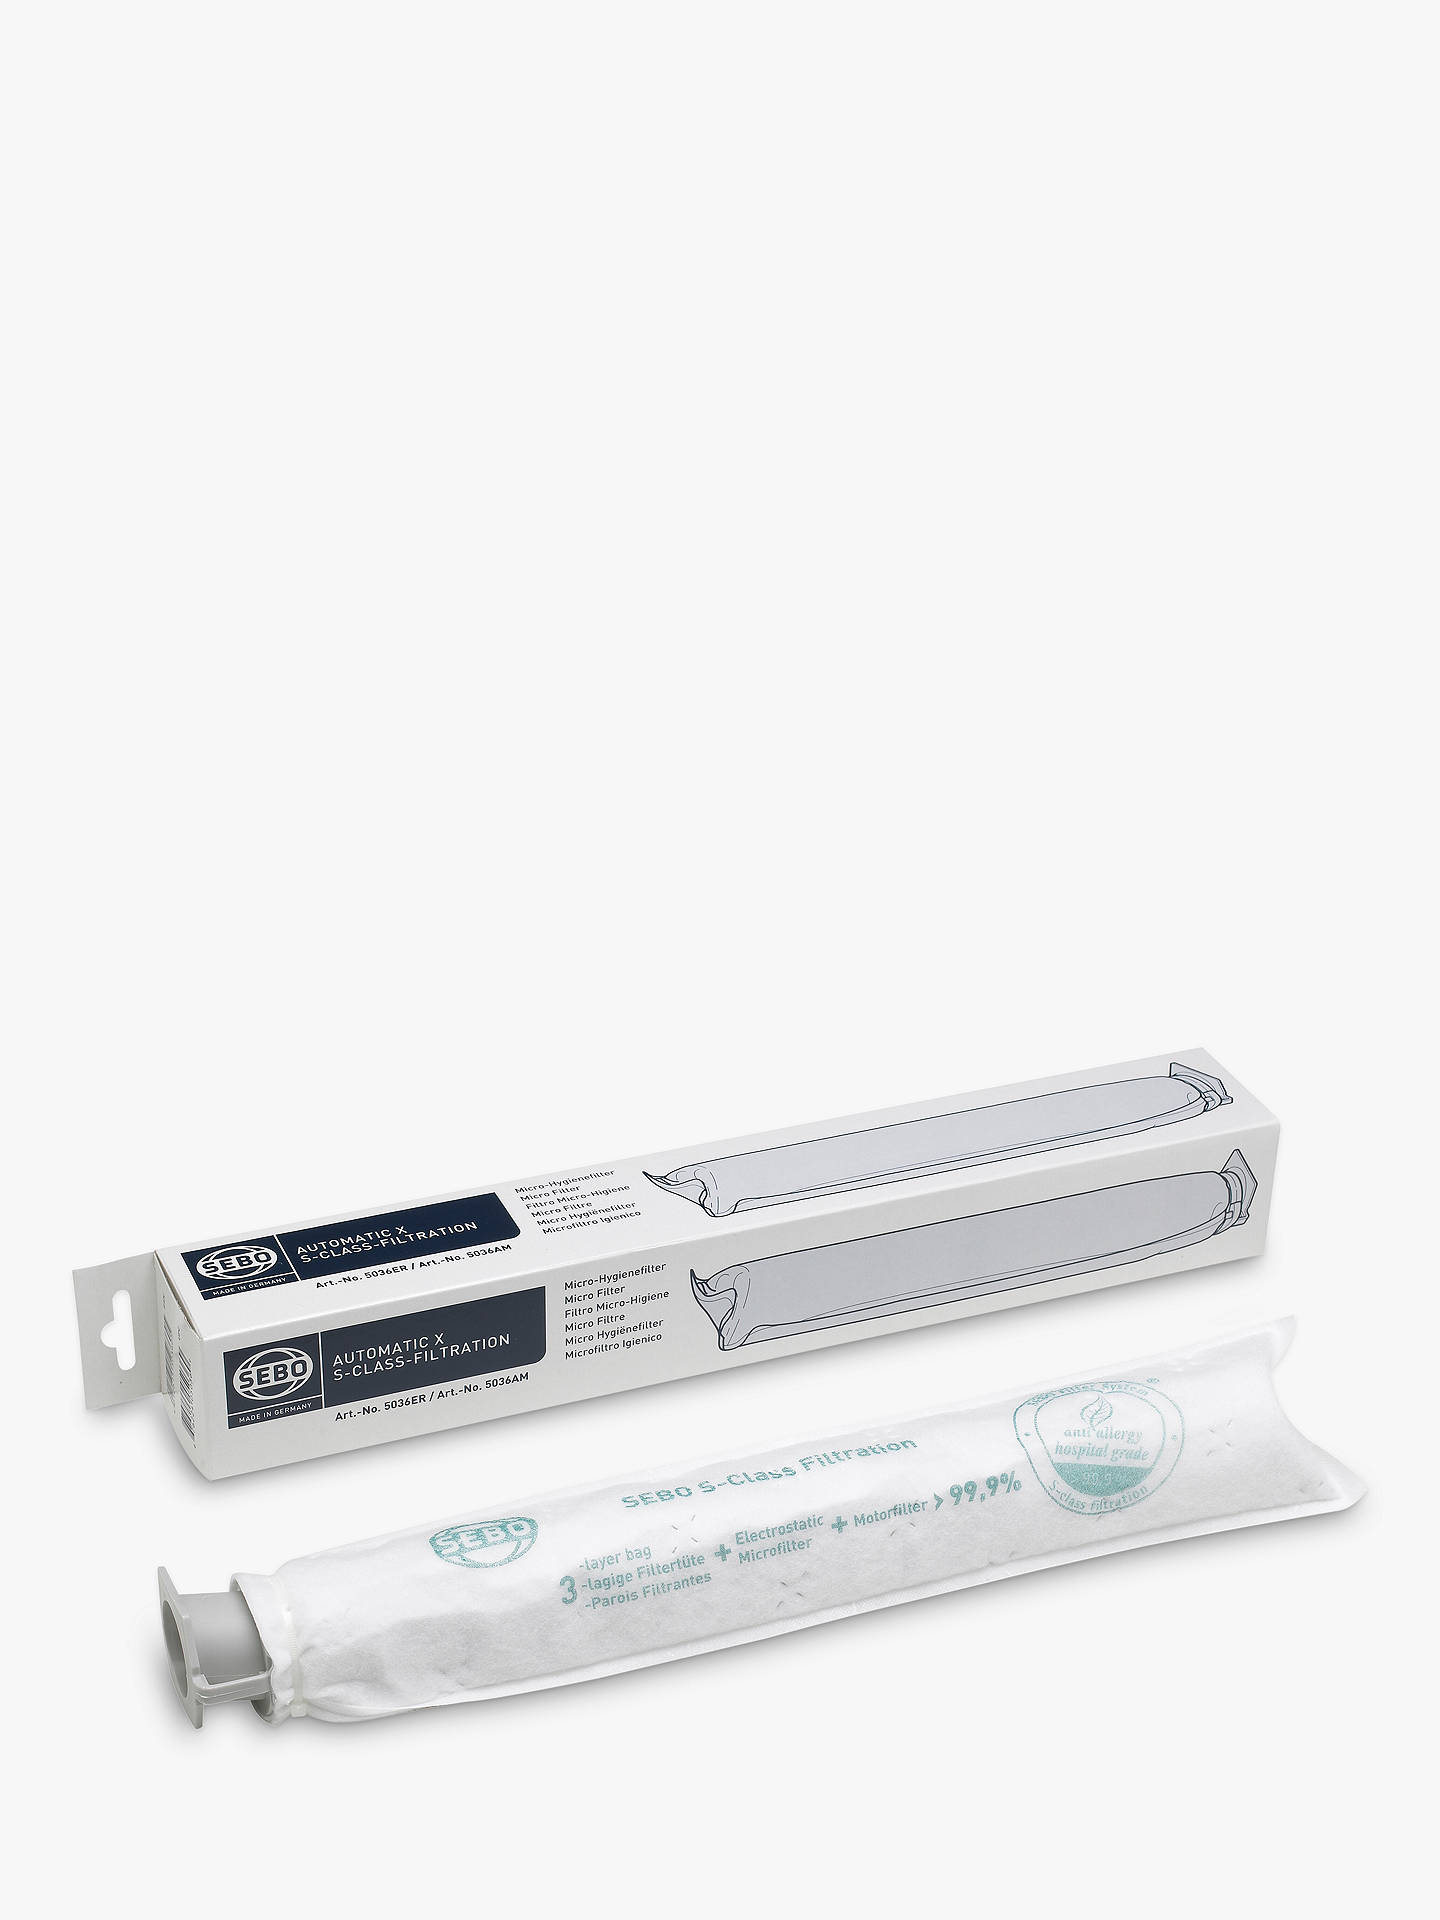 679aa1944dec Buy SEBO 5036ER X Series Upright Micro Hygiene Filter Online at  johnlewis.com